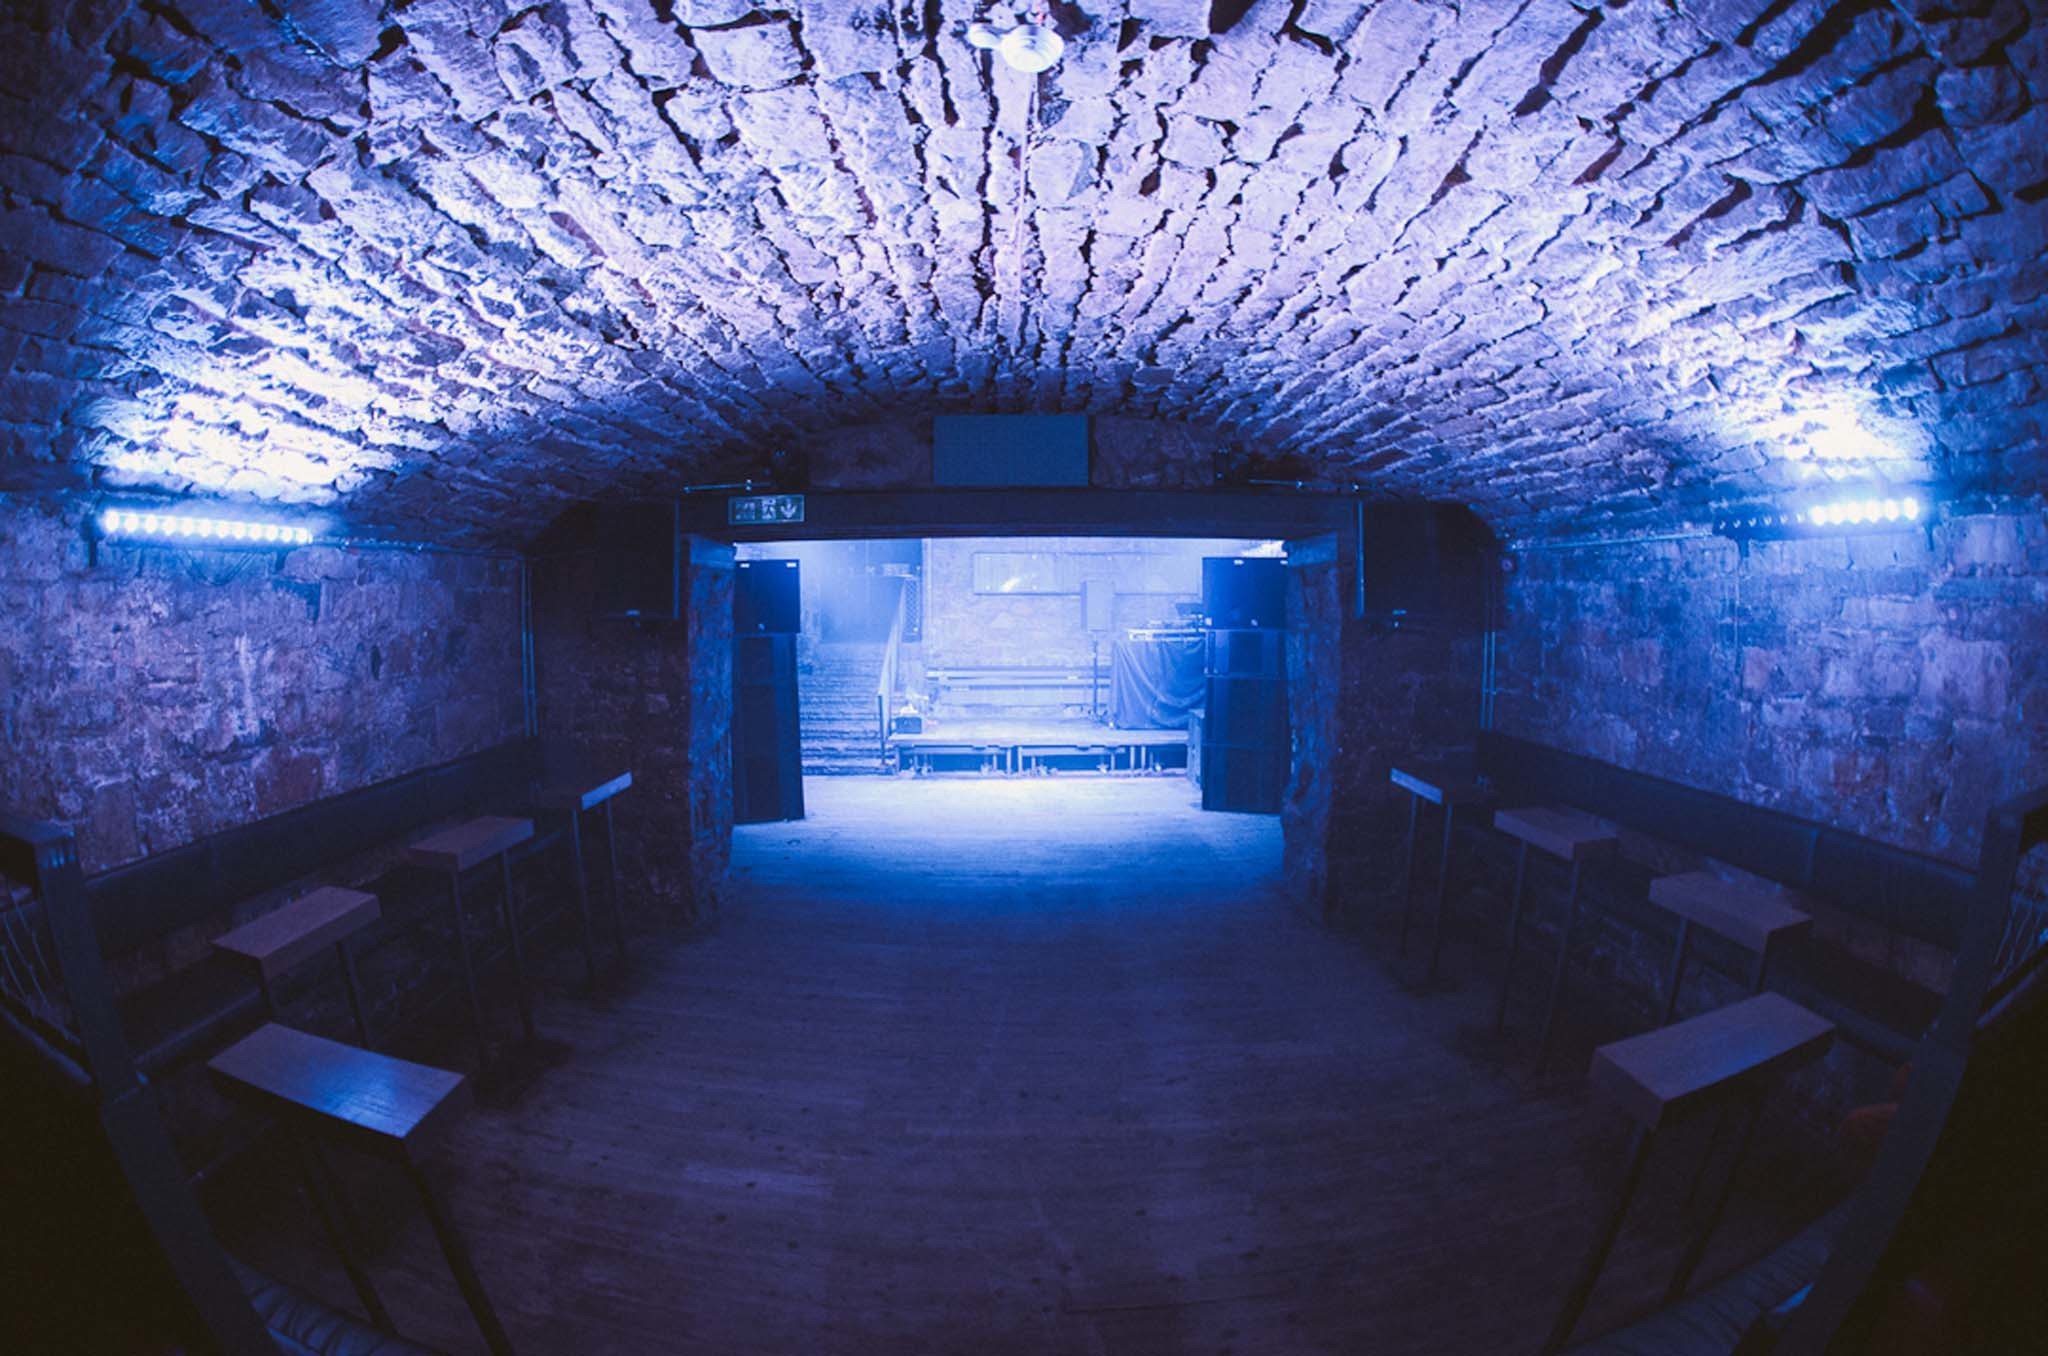 Cabaret Voltaire, Nightlife, Edinburgh